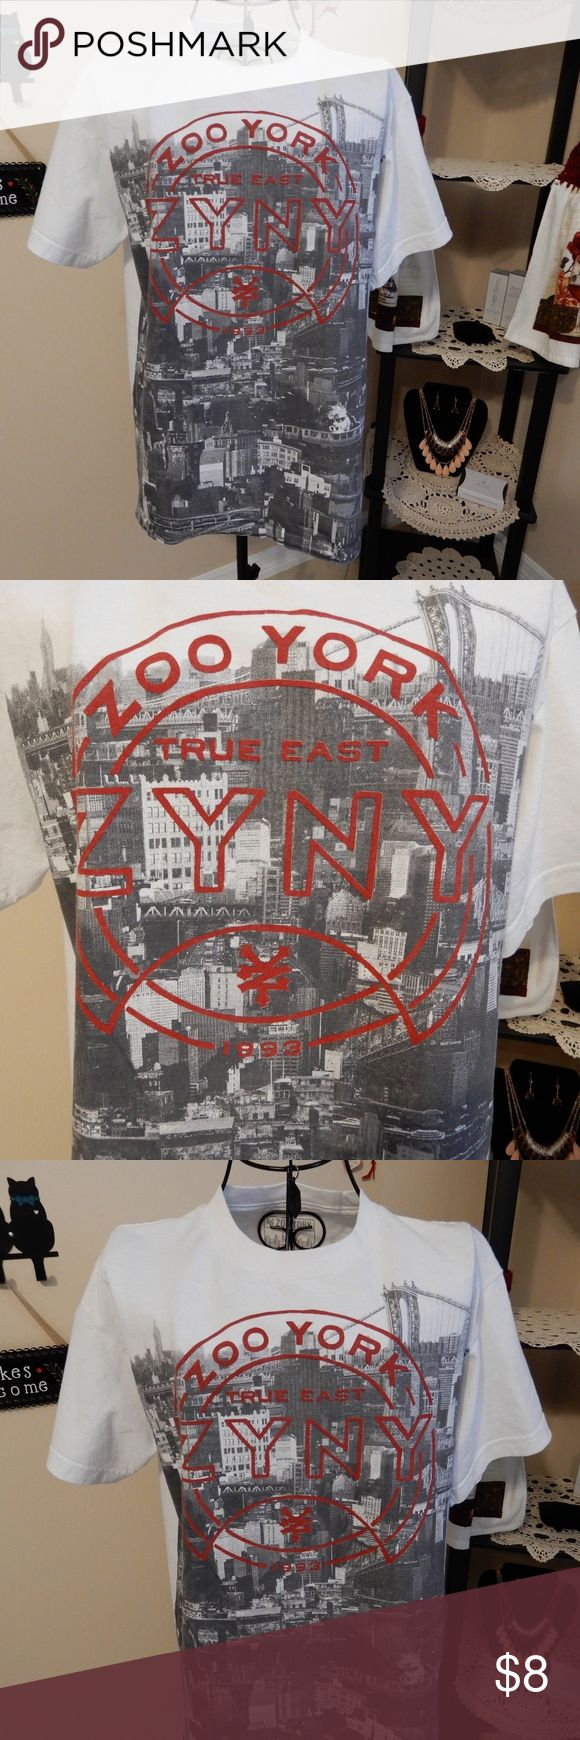 Zoo York T-Shirt for Men Zoo York T-Shirt. Size M. Young men.  Clean looks new. Make me an offer! Shirts Tees - Short Sleeve